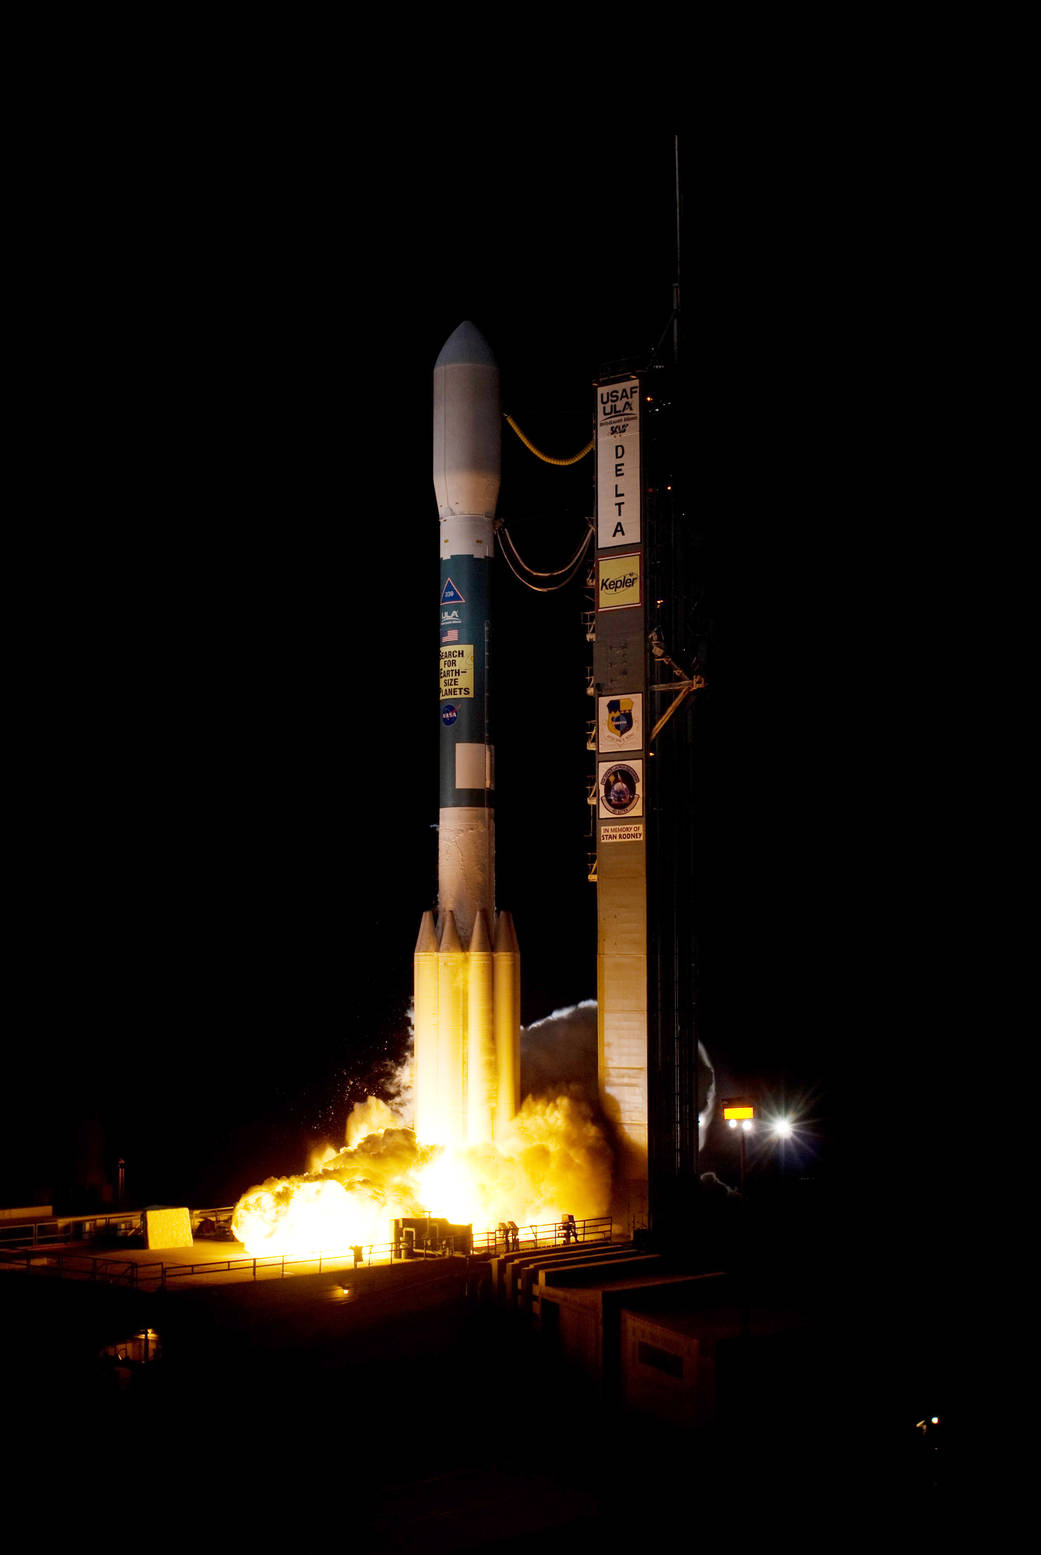 Kepler was launched on March 6, 2009 in Florida on a mission to explore structure and diversity of planetary systems.